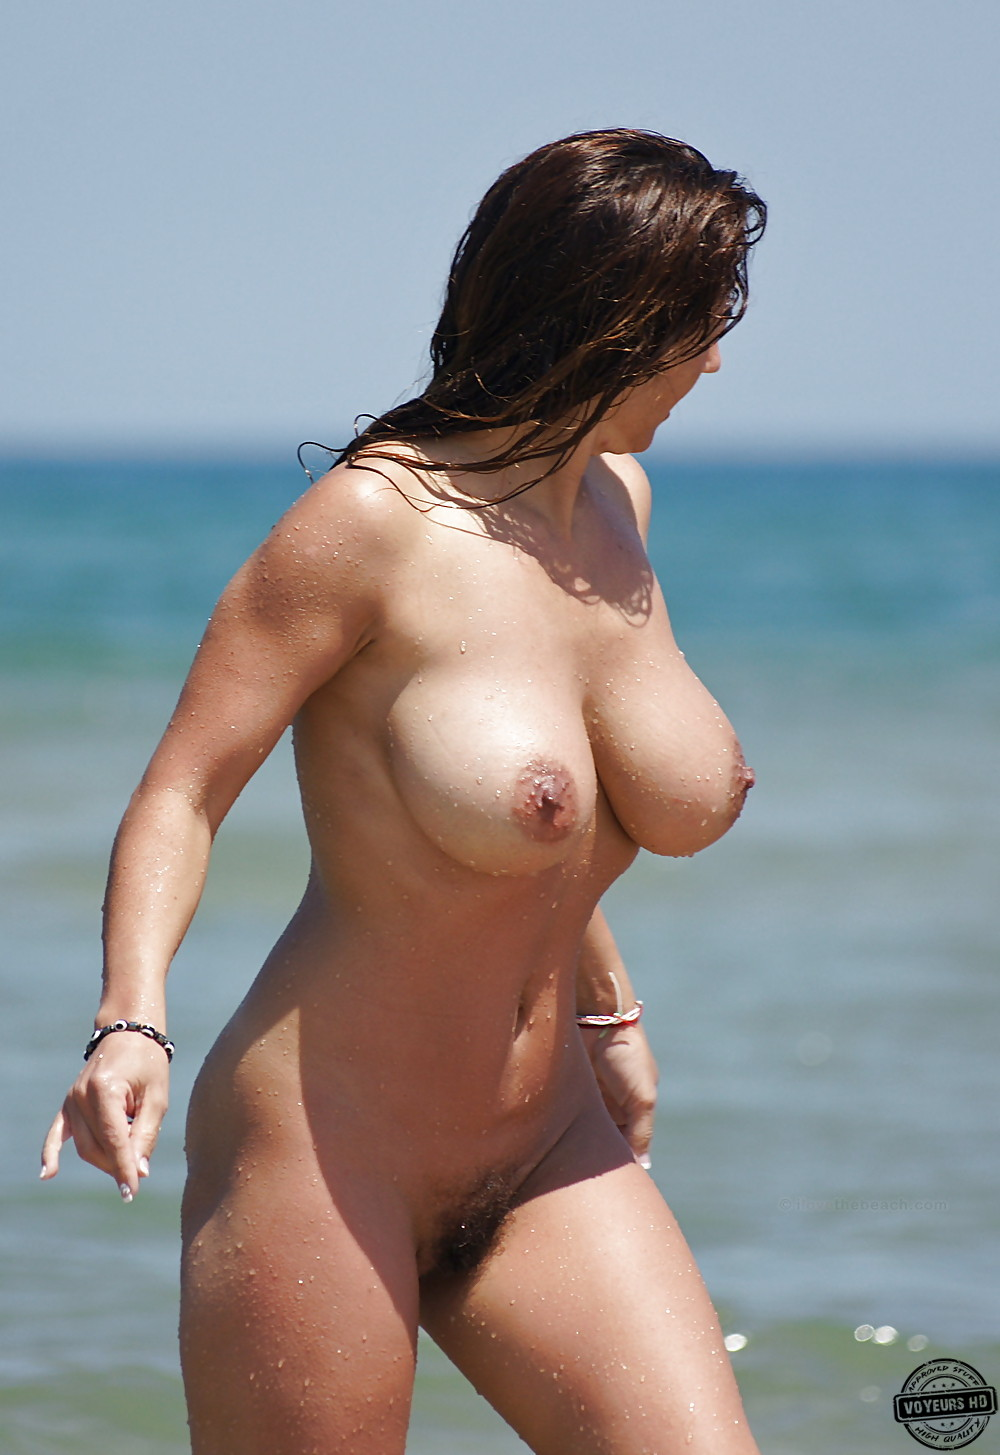 Small tits on the beach